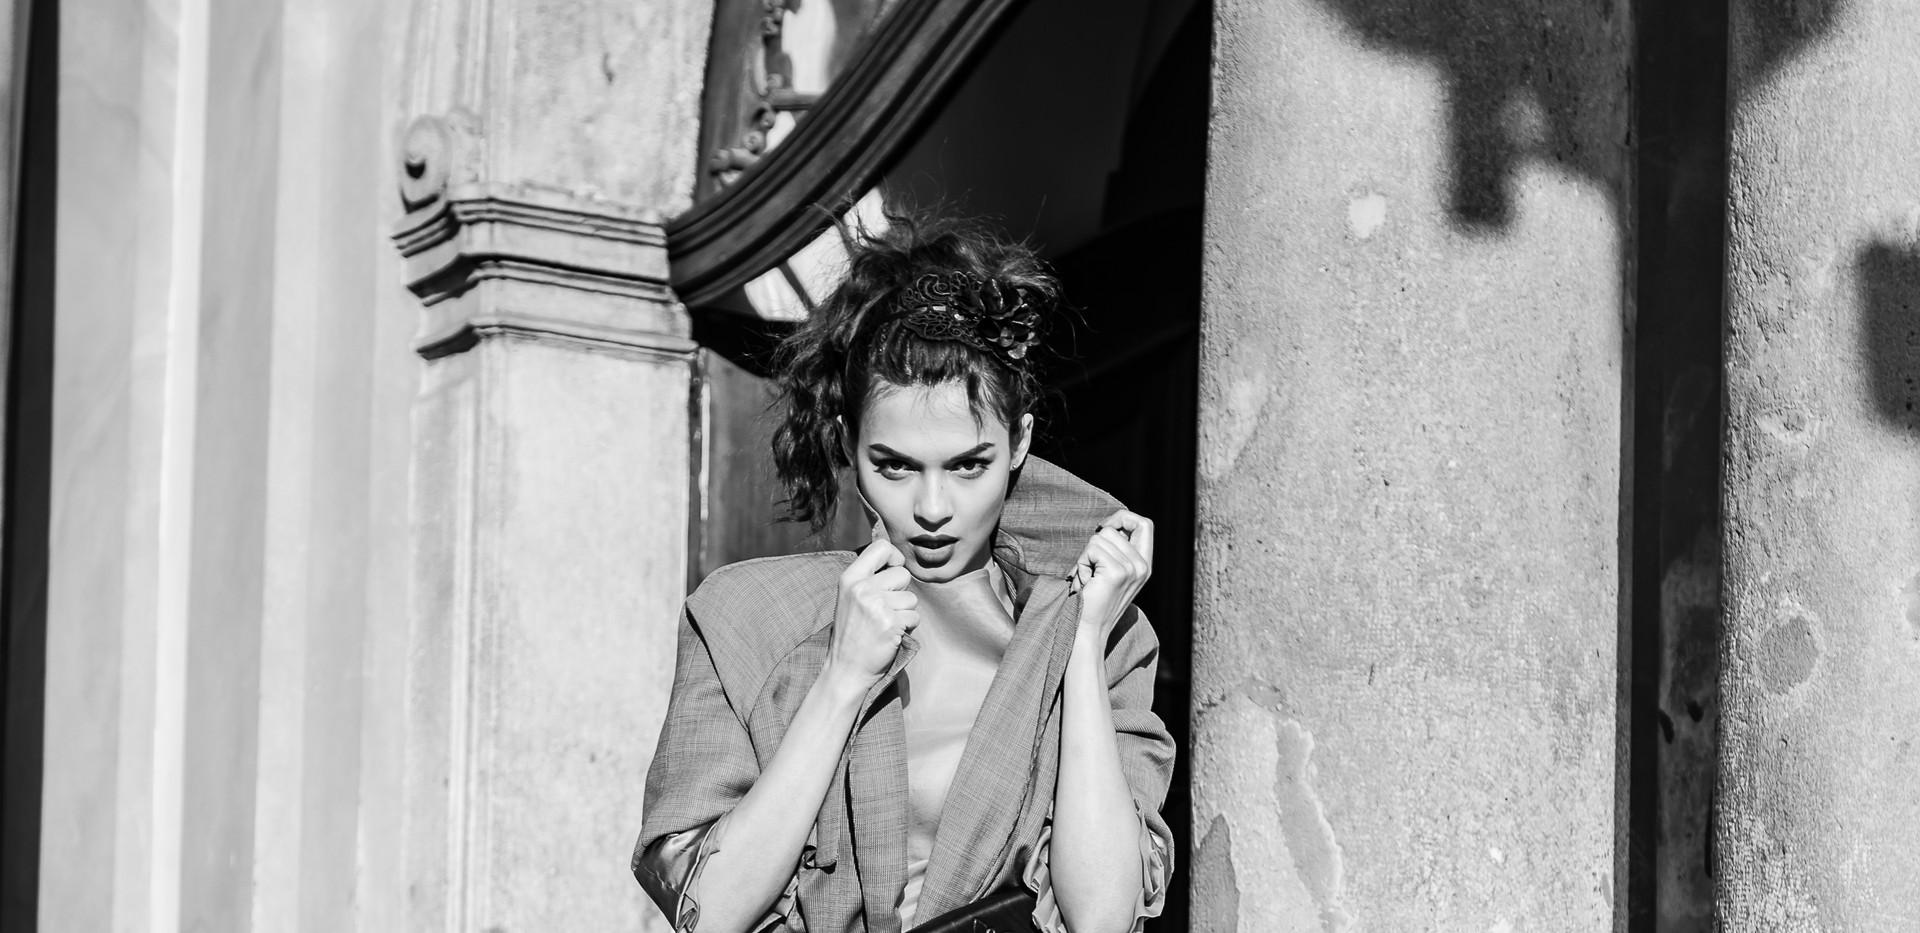 Tamilla by Cissia Schippers Photographer